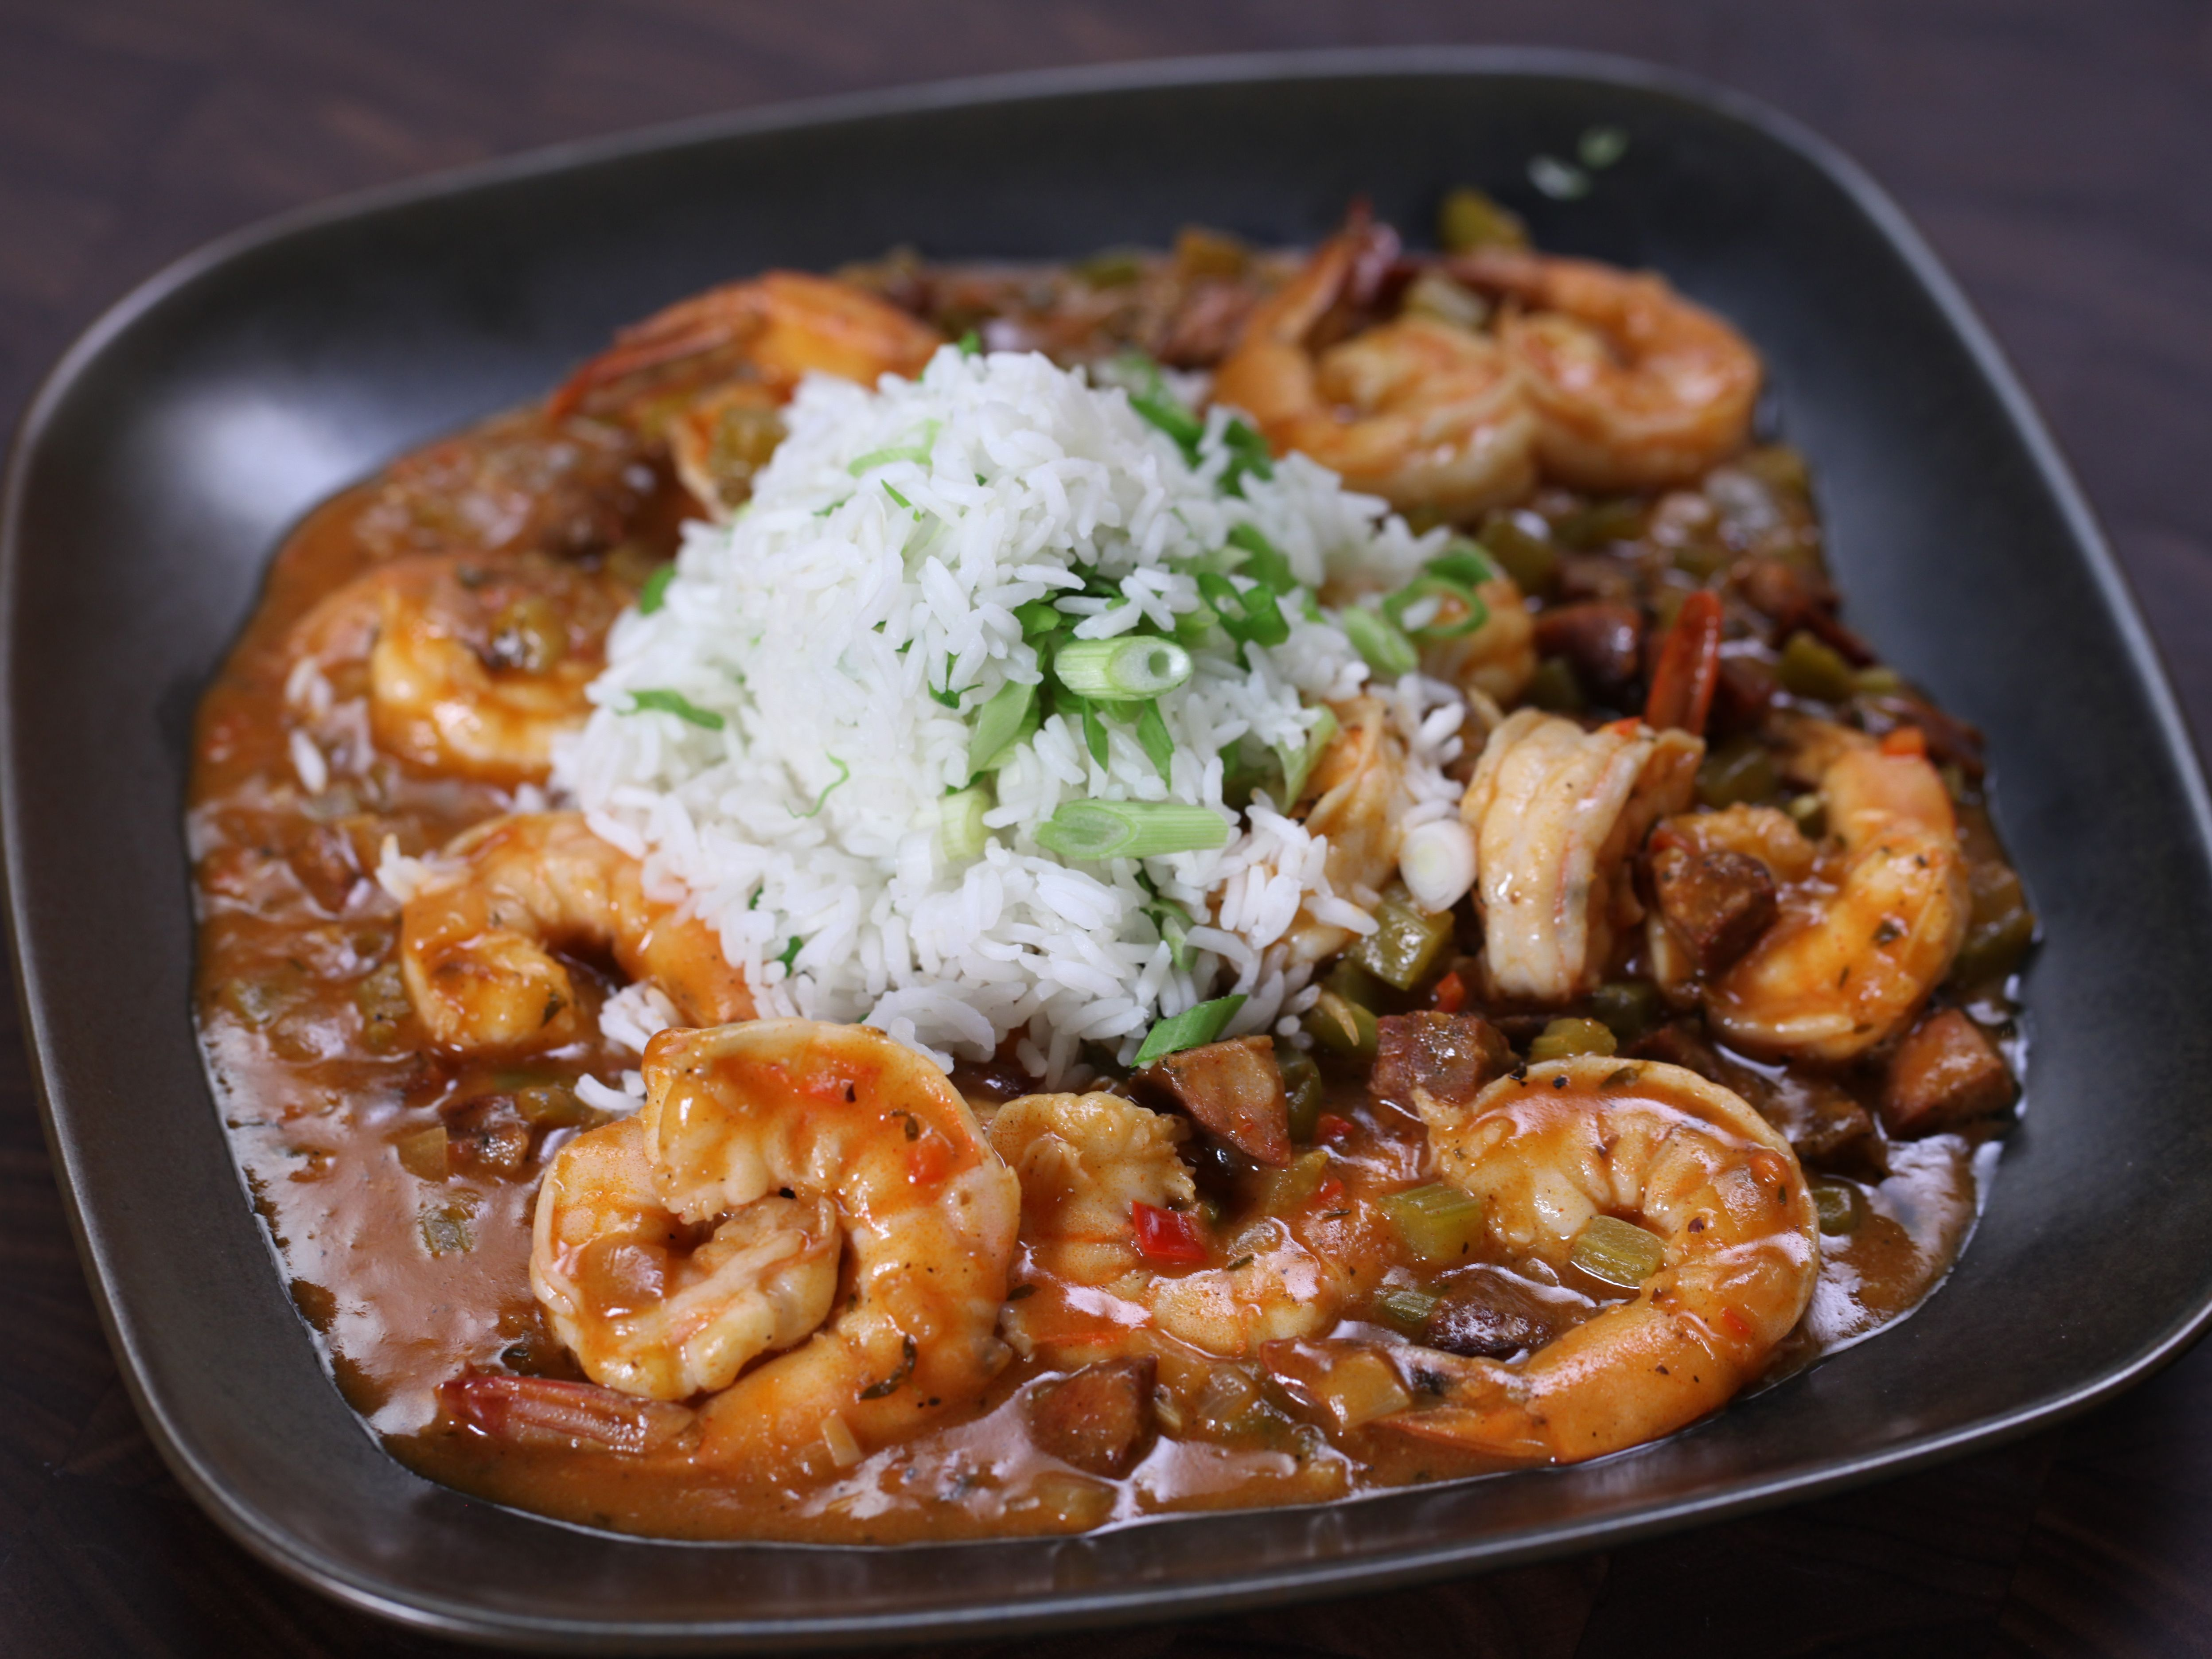 Louisiana style shrimp recipe recipes food and entrees louisiana style shrimp recipe rachael ray food network foodnetwork forumfinder Gallery